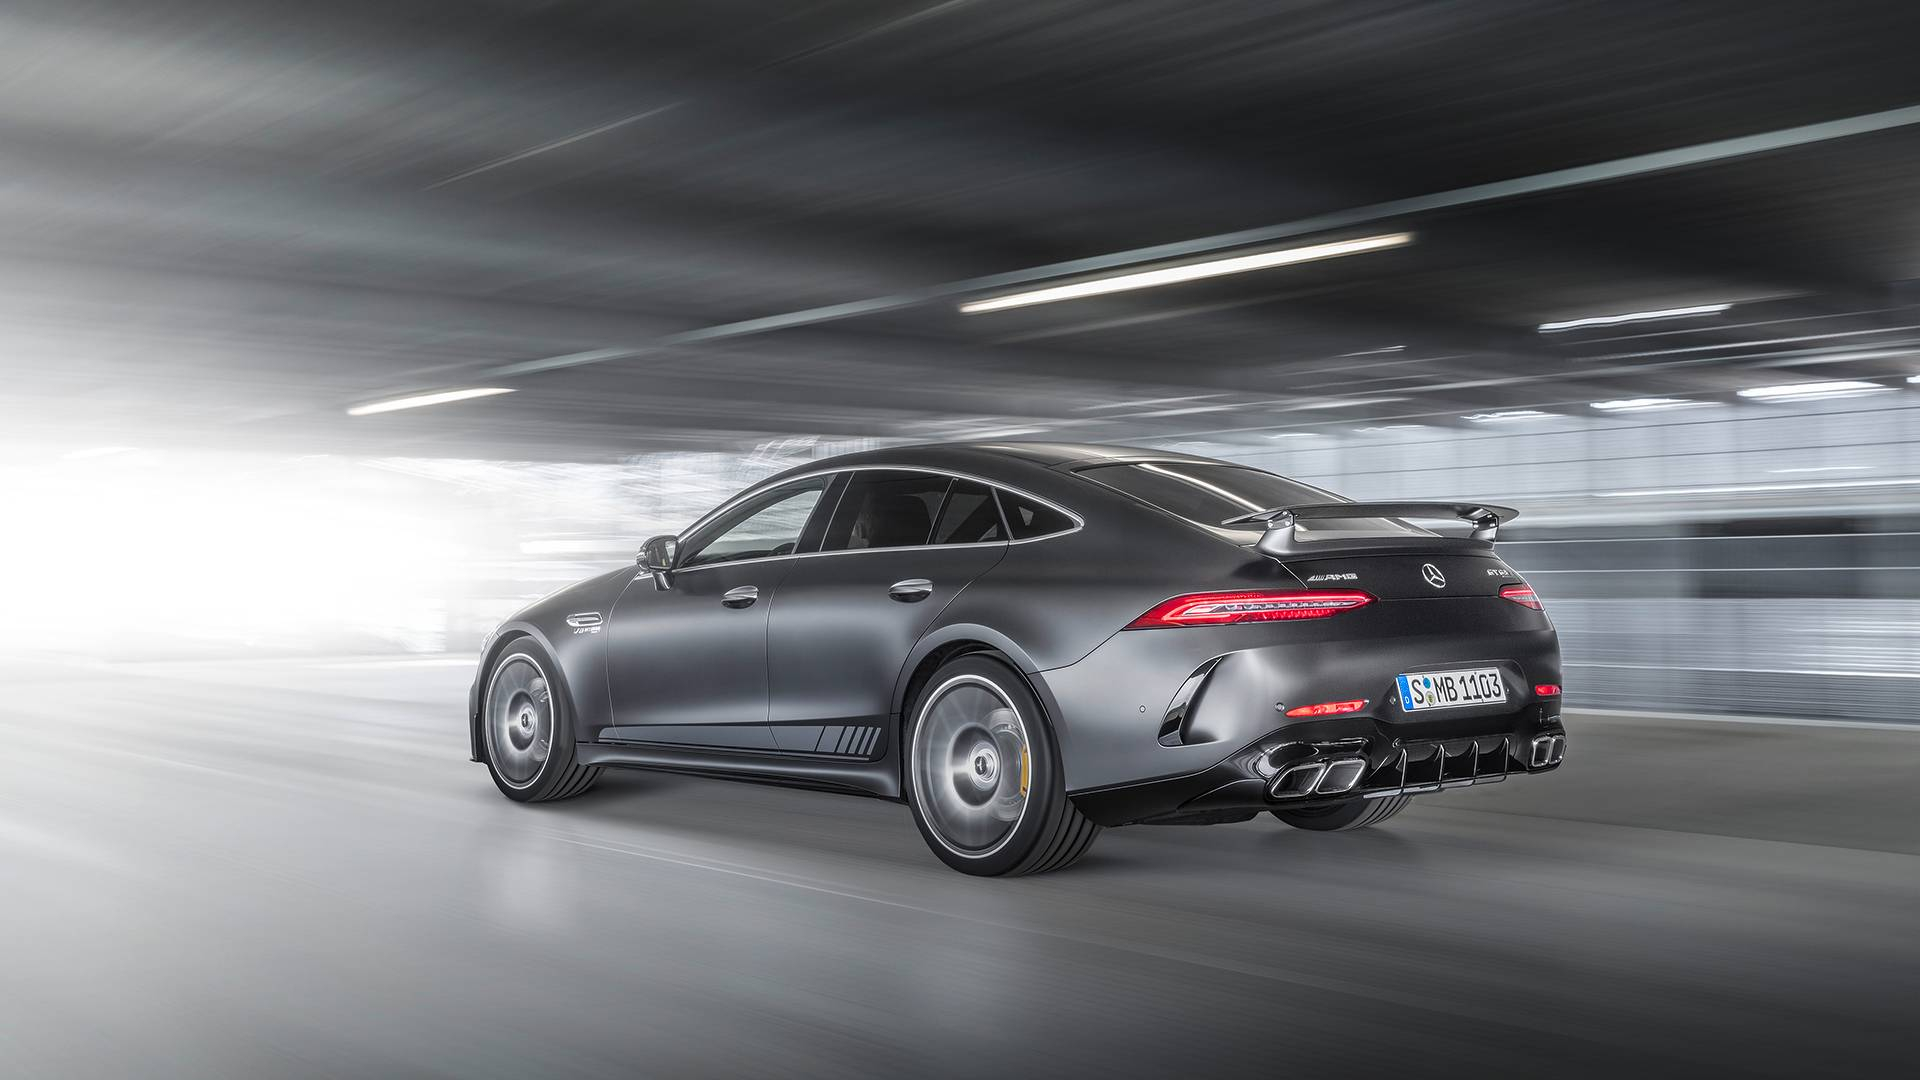 Mercedes Amg Gt 63 S Edition 1 Is Way More Expensive Than An S63 Home Switches 4